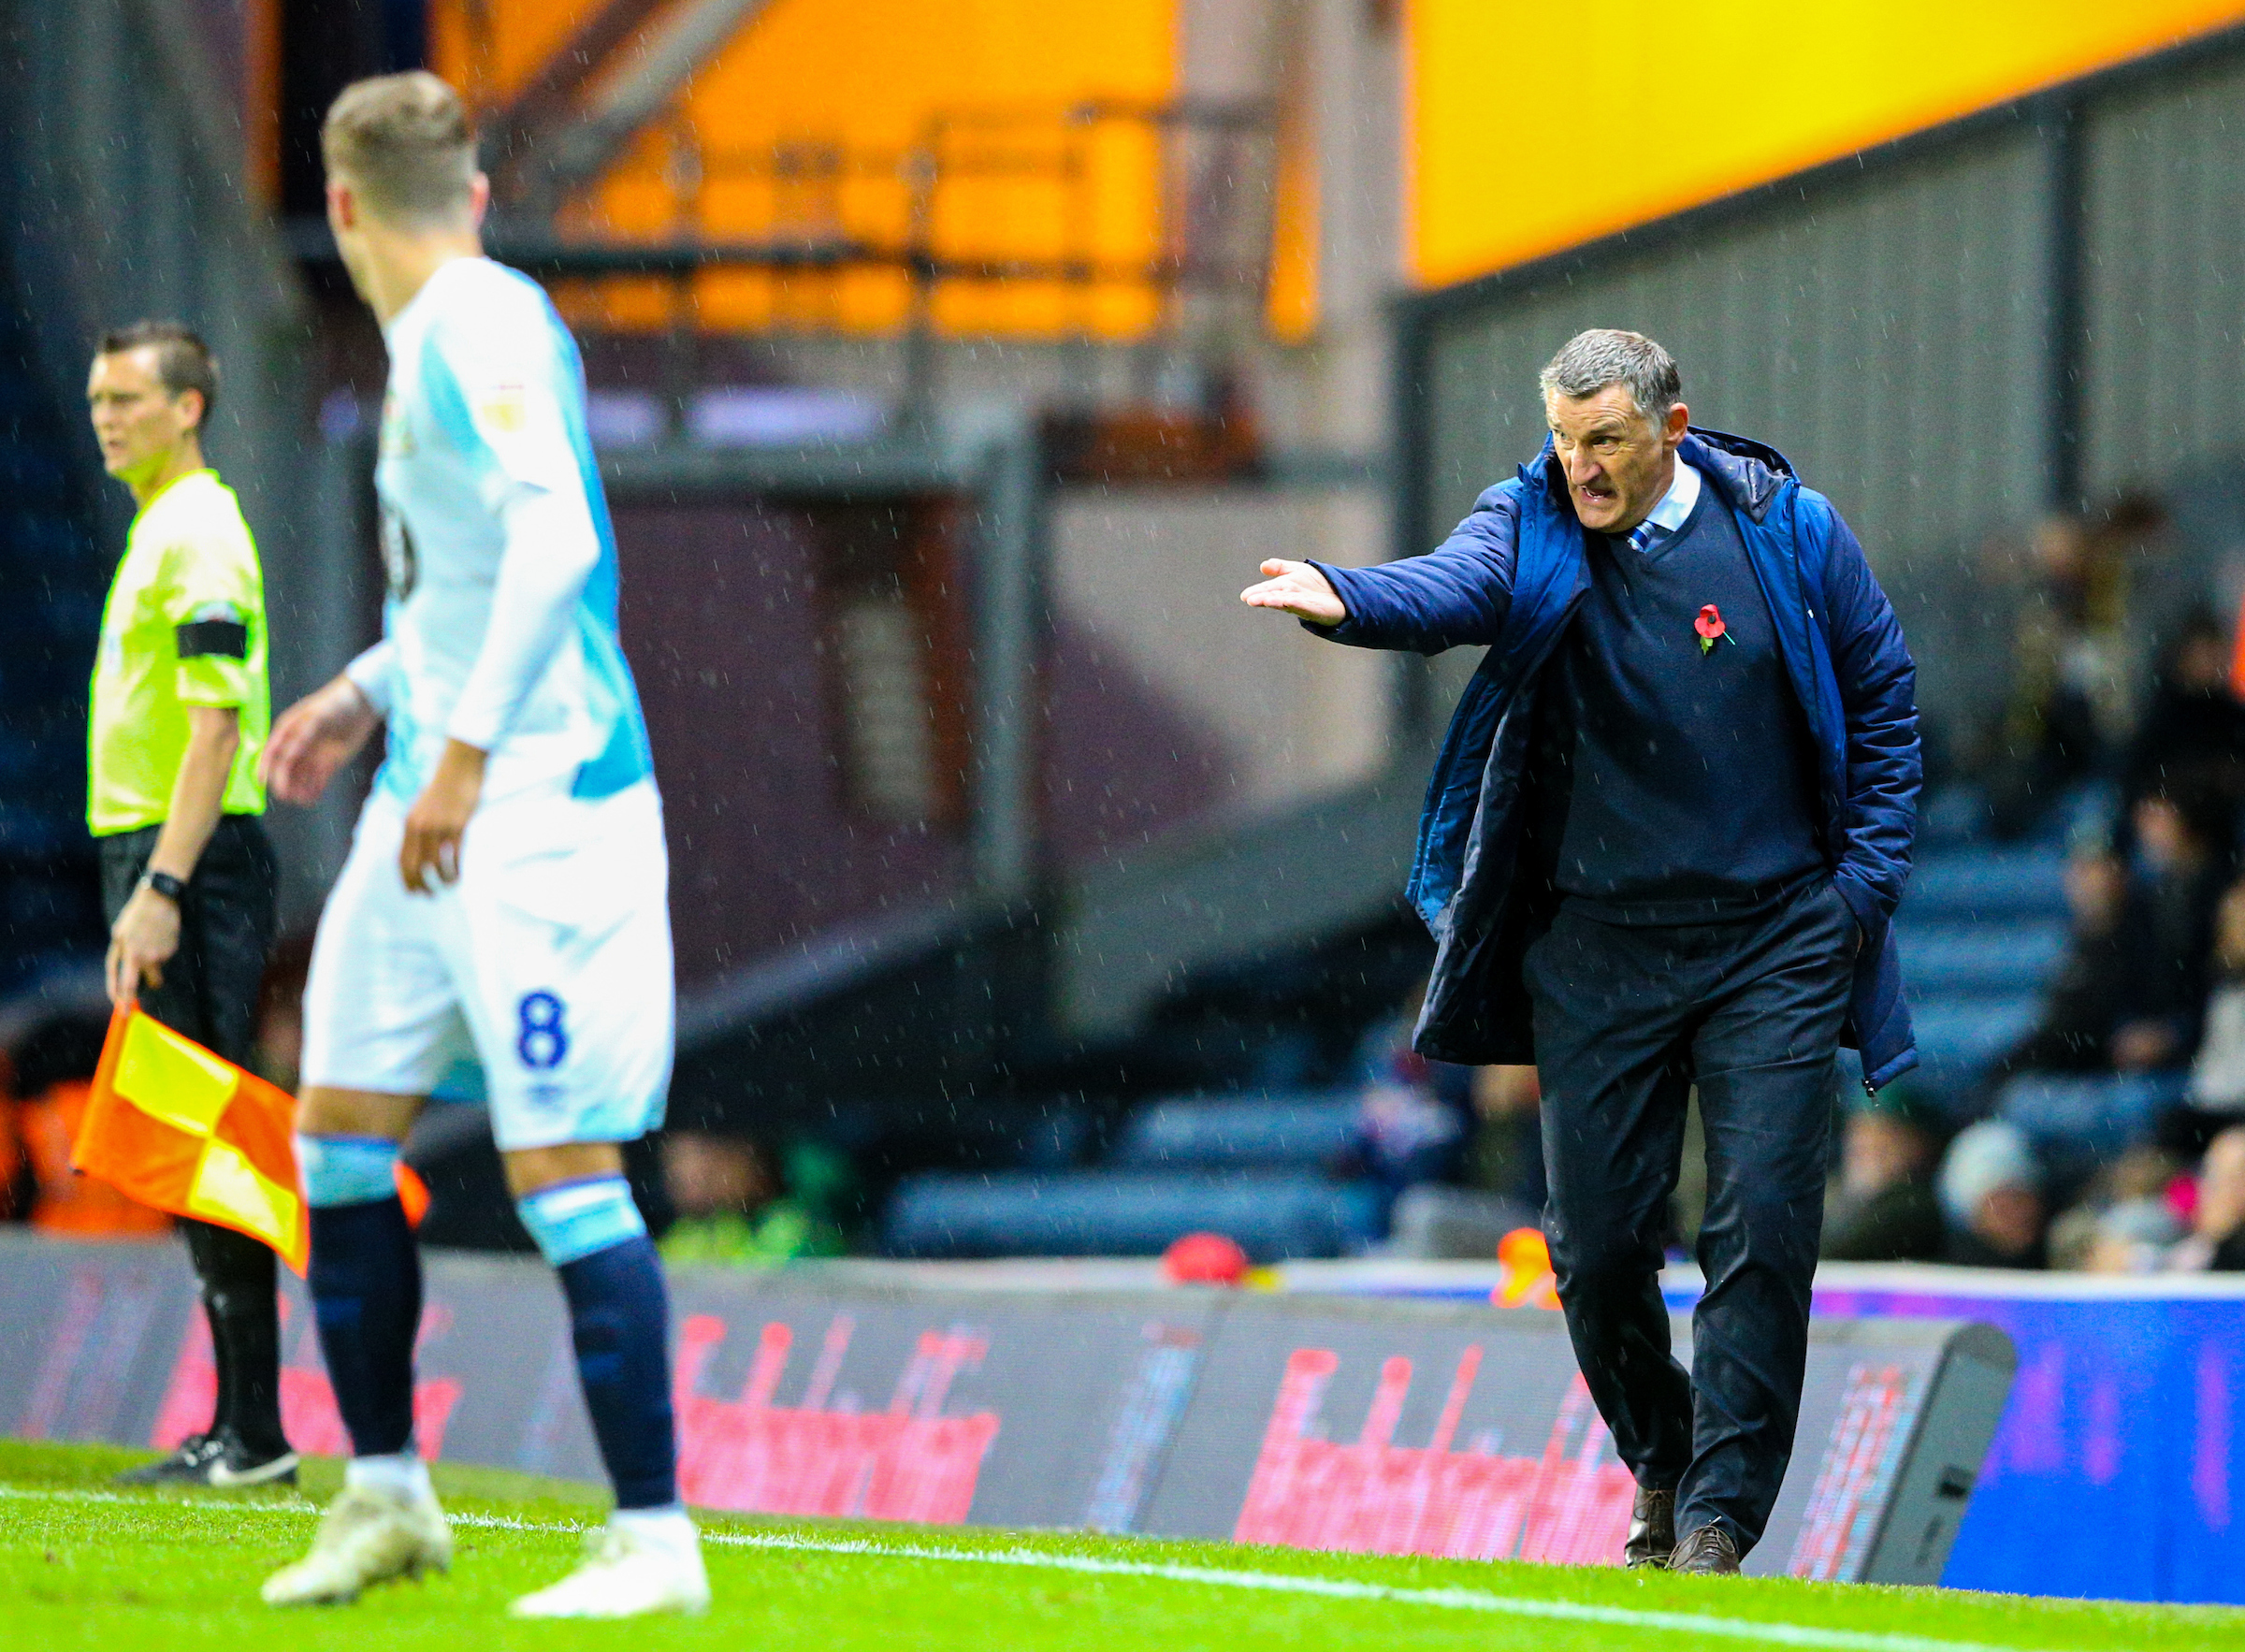 Tony Mowbray's side host Rotherham United on Saturday in their final game before the international break